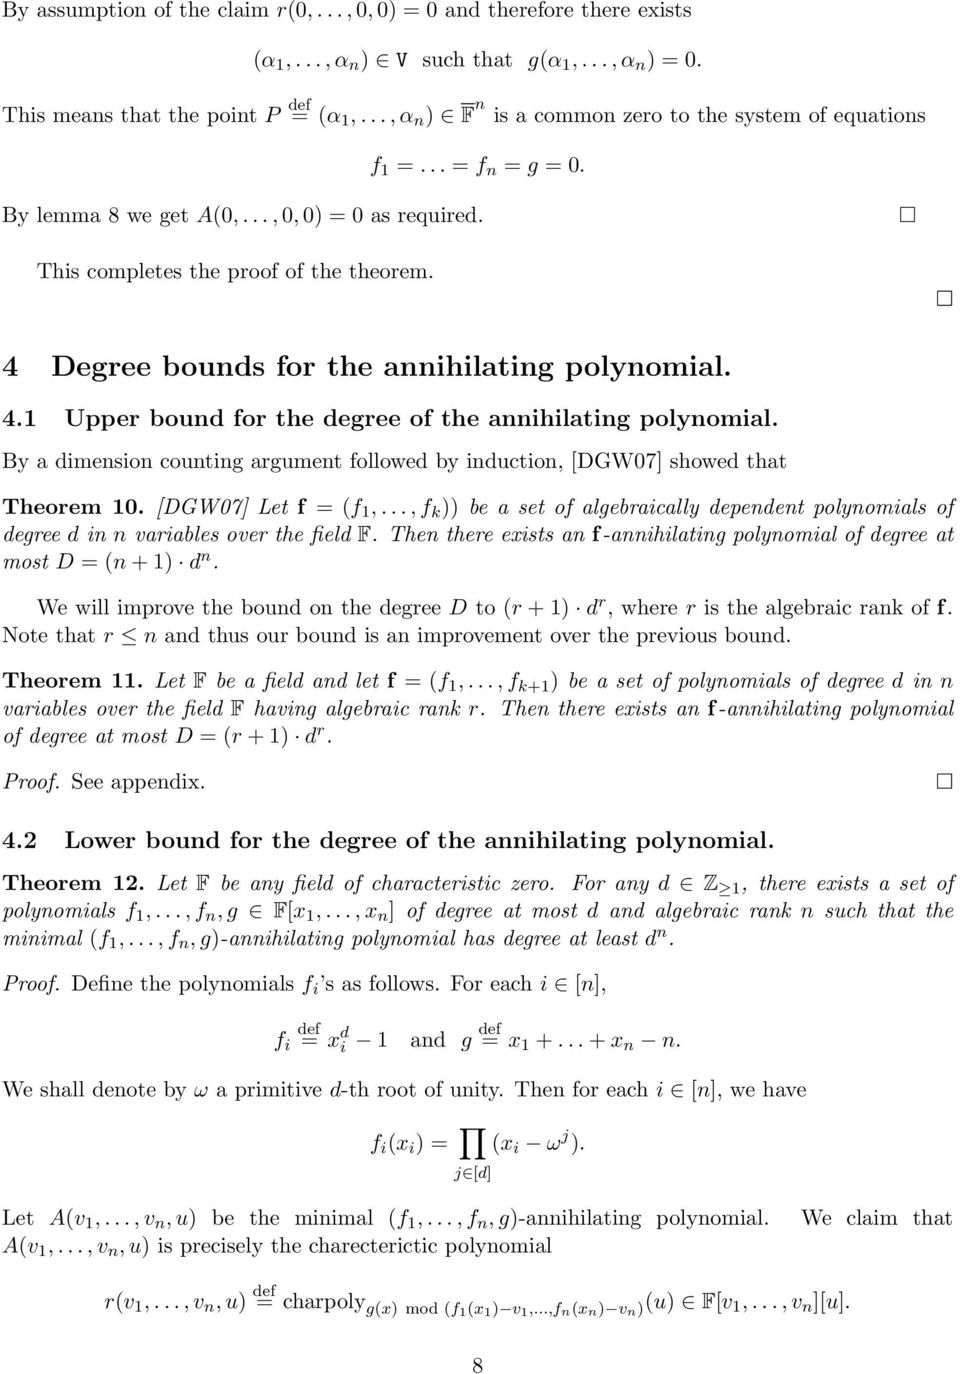 4 Degree bounds for the annihilating polynomial. 4.1 Upper bound for the degree of the annihilating polynomial. By a dimension counting argument followed by induction, [DGW07] showed that Theorem 10.